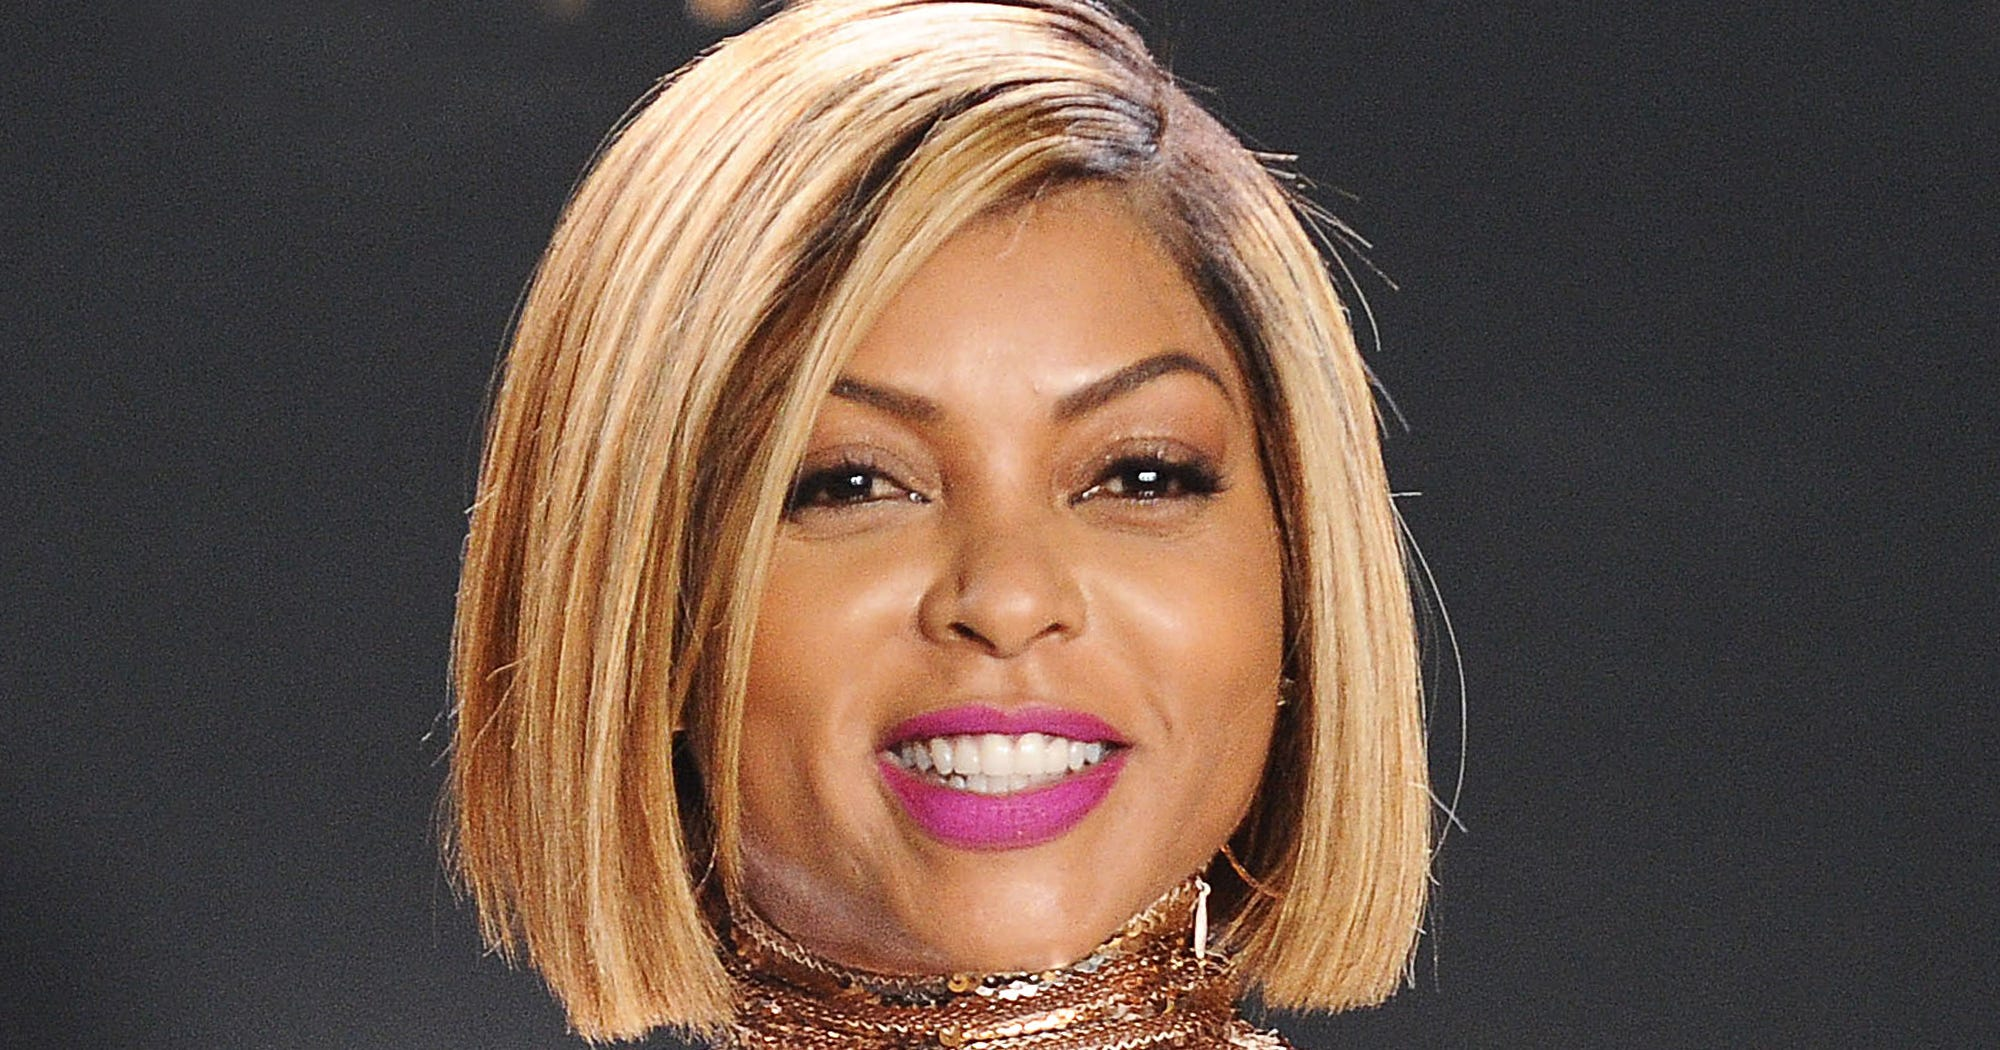 Taraji P. Henson Is Replacing Mel Gibson In A Gender-Flipped Rom-Com Because #Upgrades